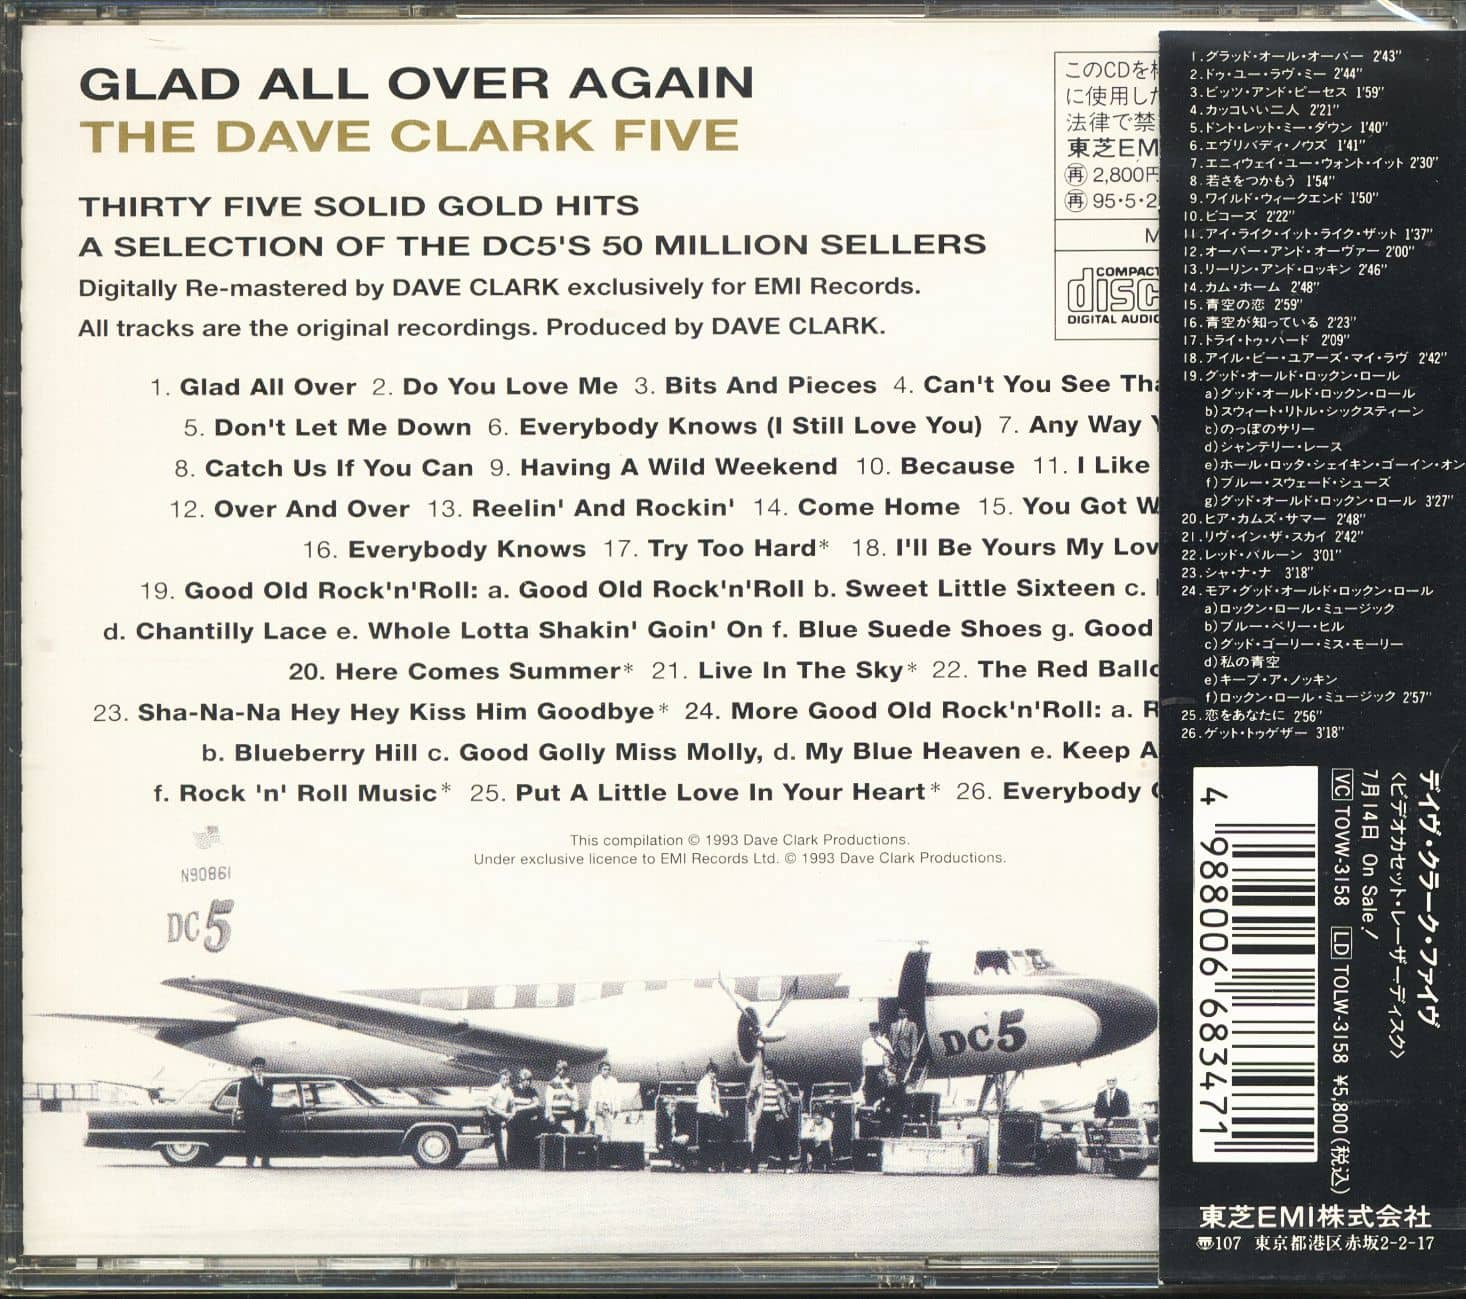 the dave clark five glad all over again (cd, japan)